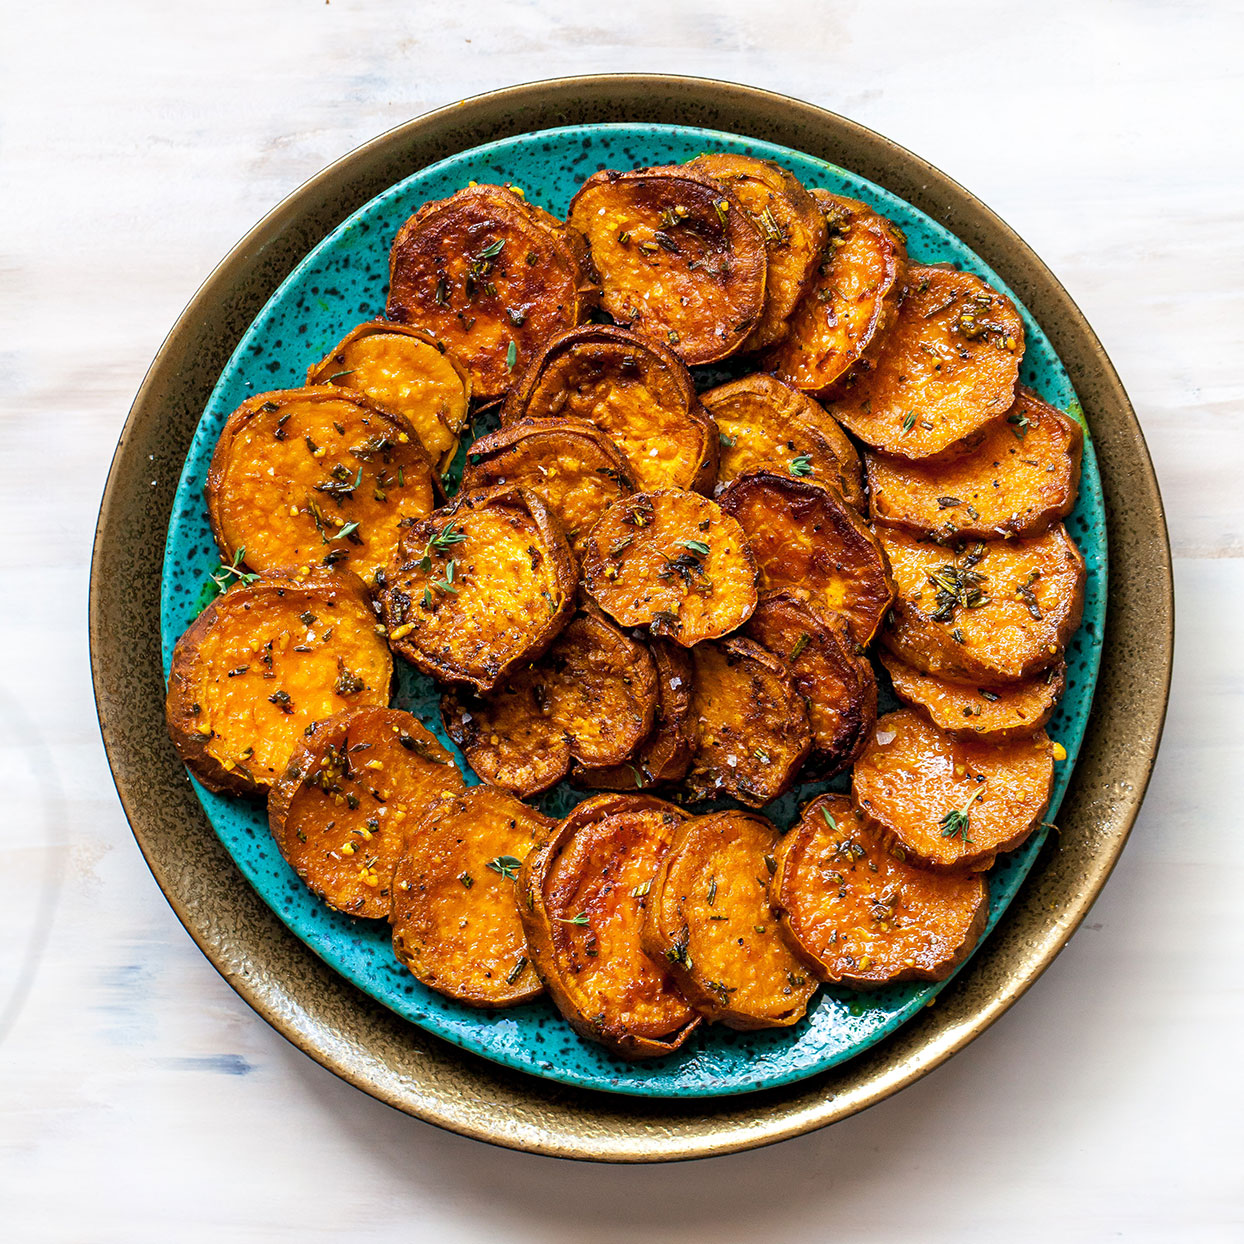 Melting Sweet Potatoes with Herbs & Garlic Trusted Brands